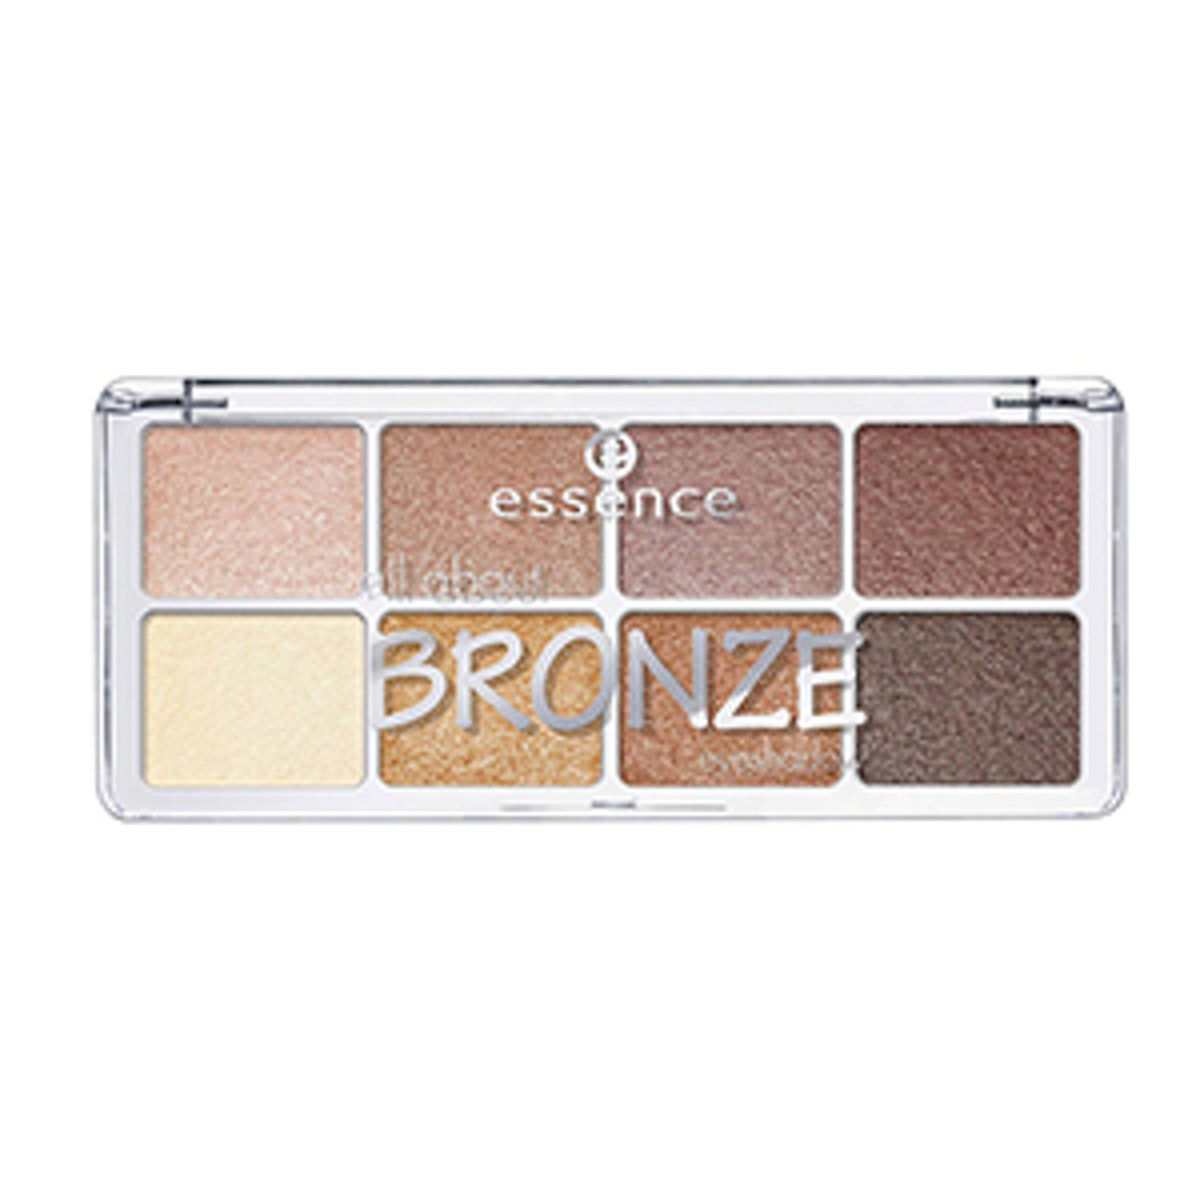 All About Eyeshadow Palette